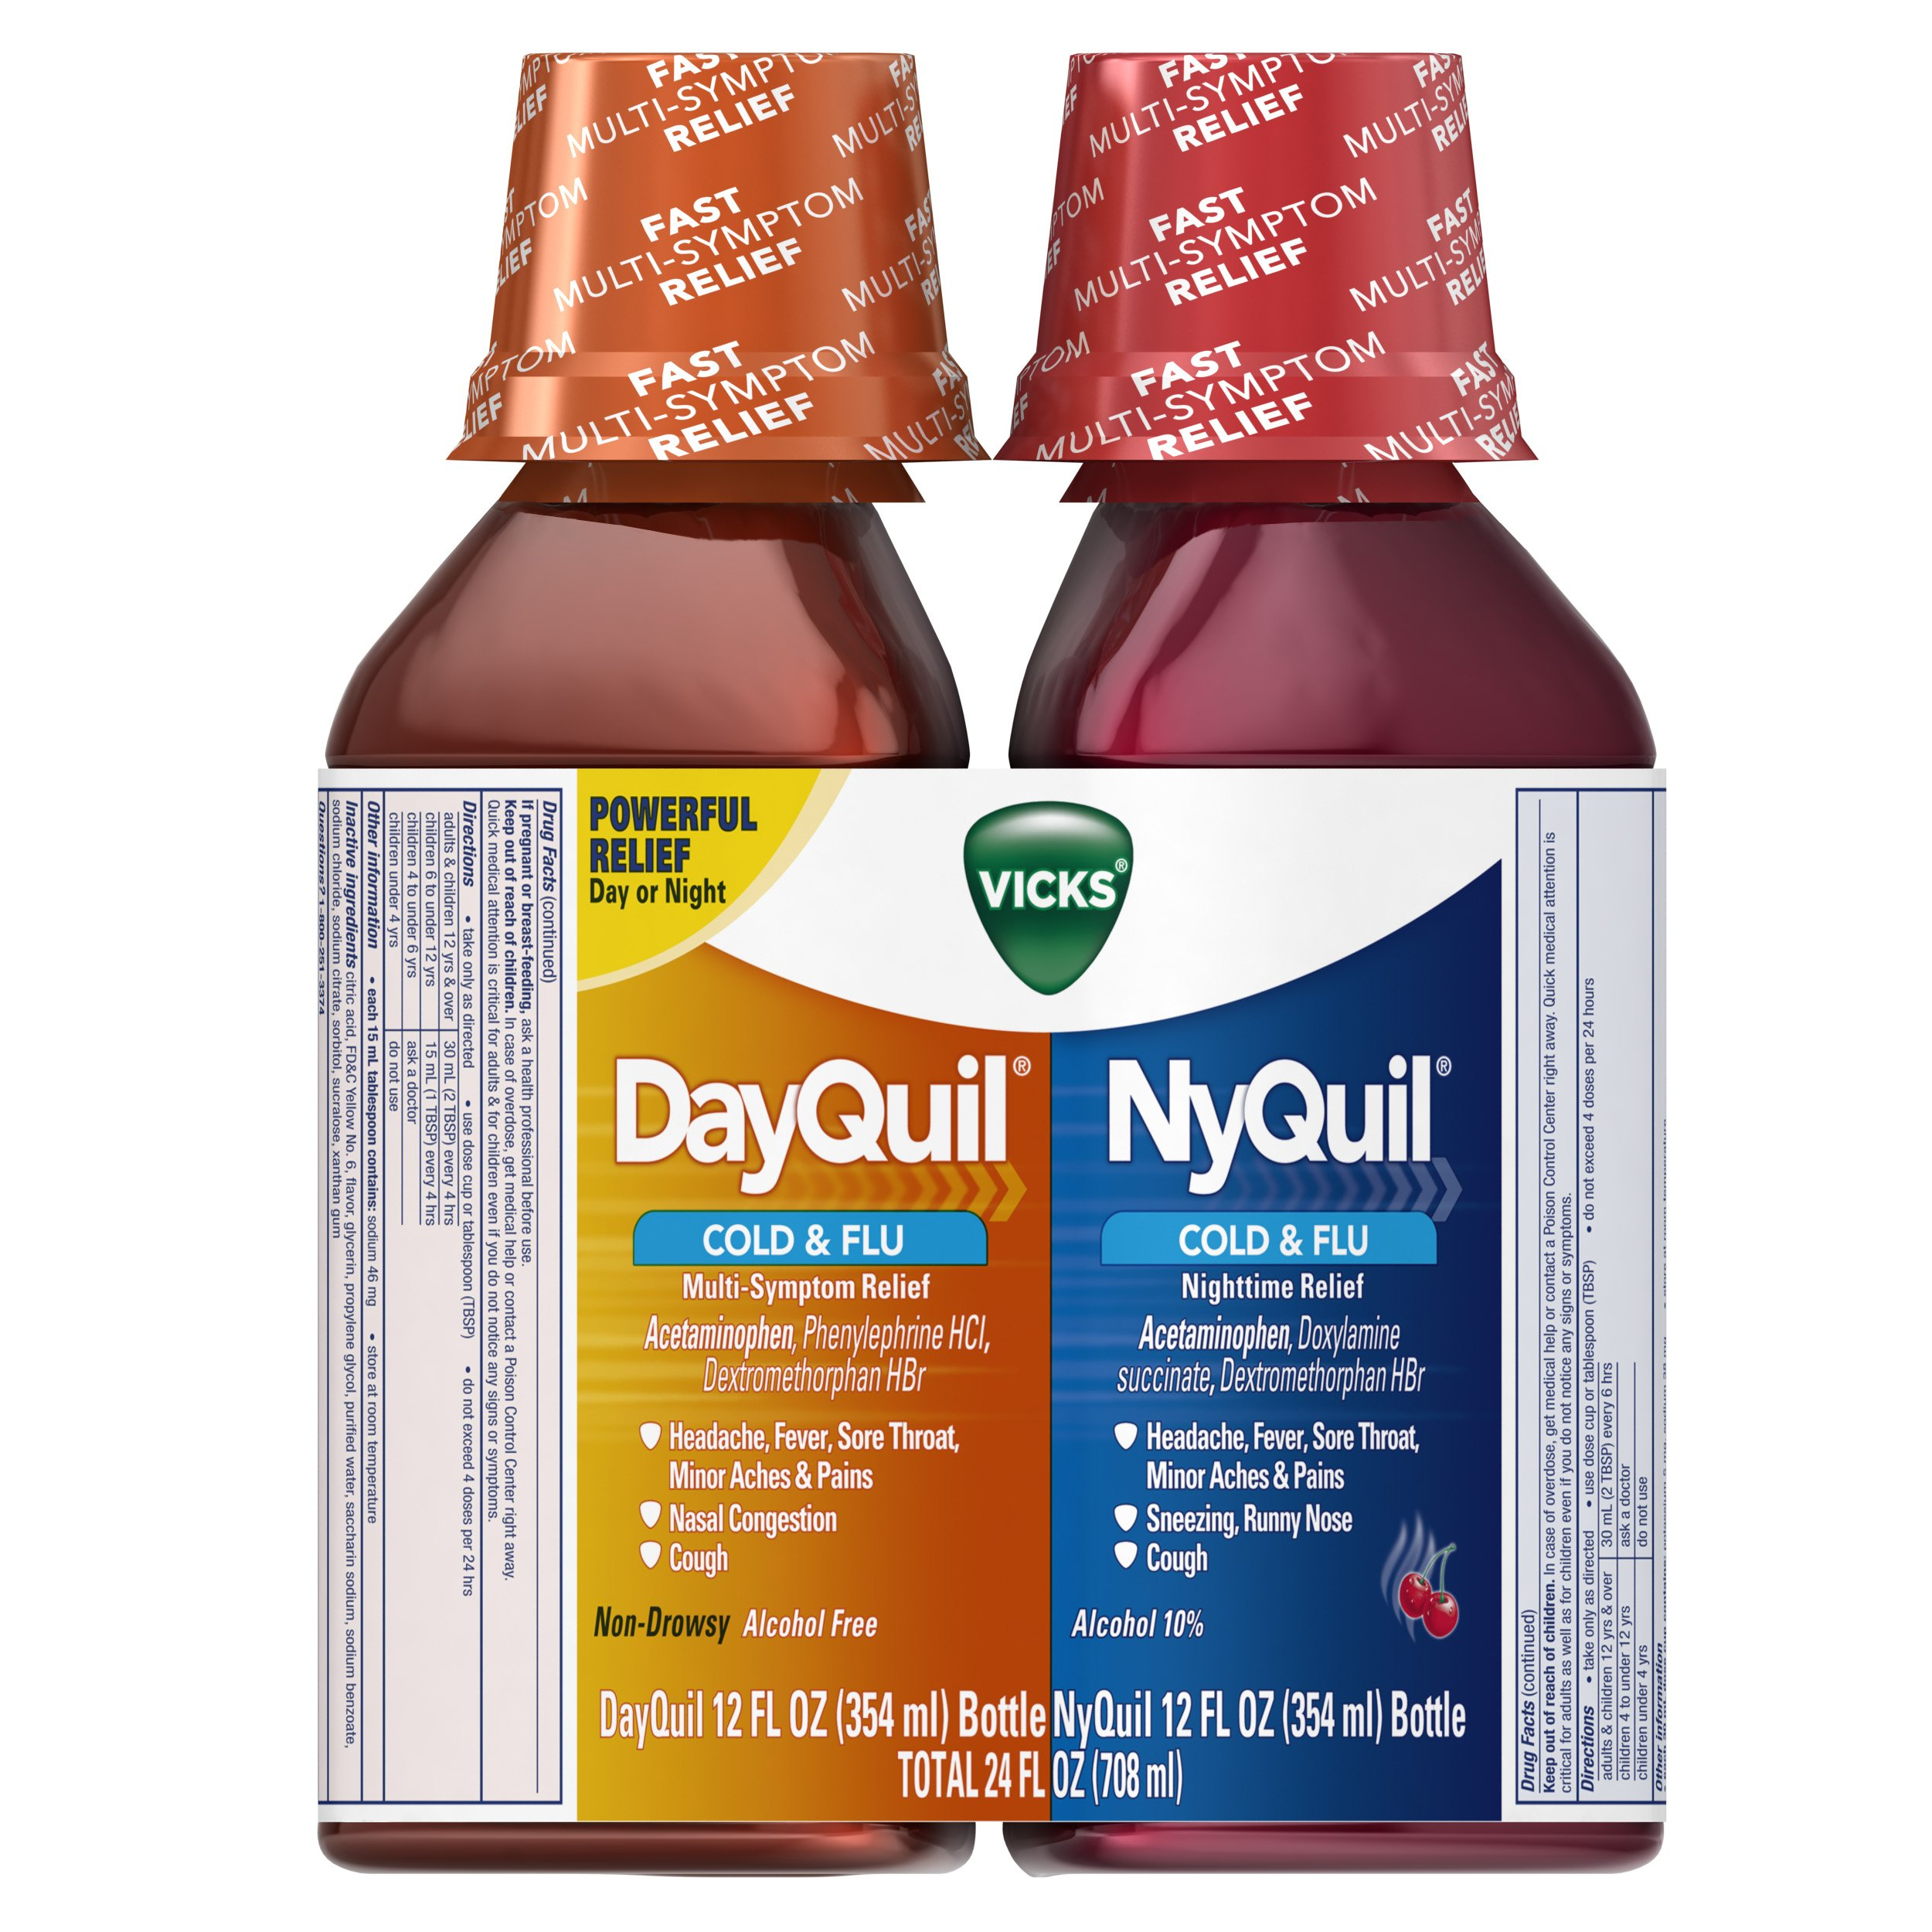 Vicks NyQuil and DayQuil Cough Cold and Flu Relief Liquid, 12 Fl Oz, pack of 2 by Vicks